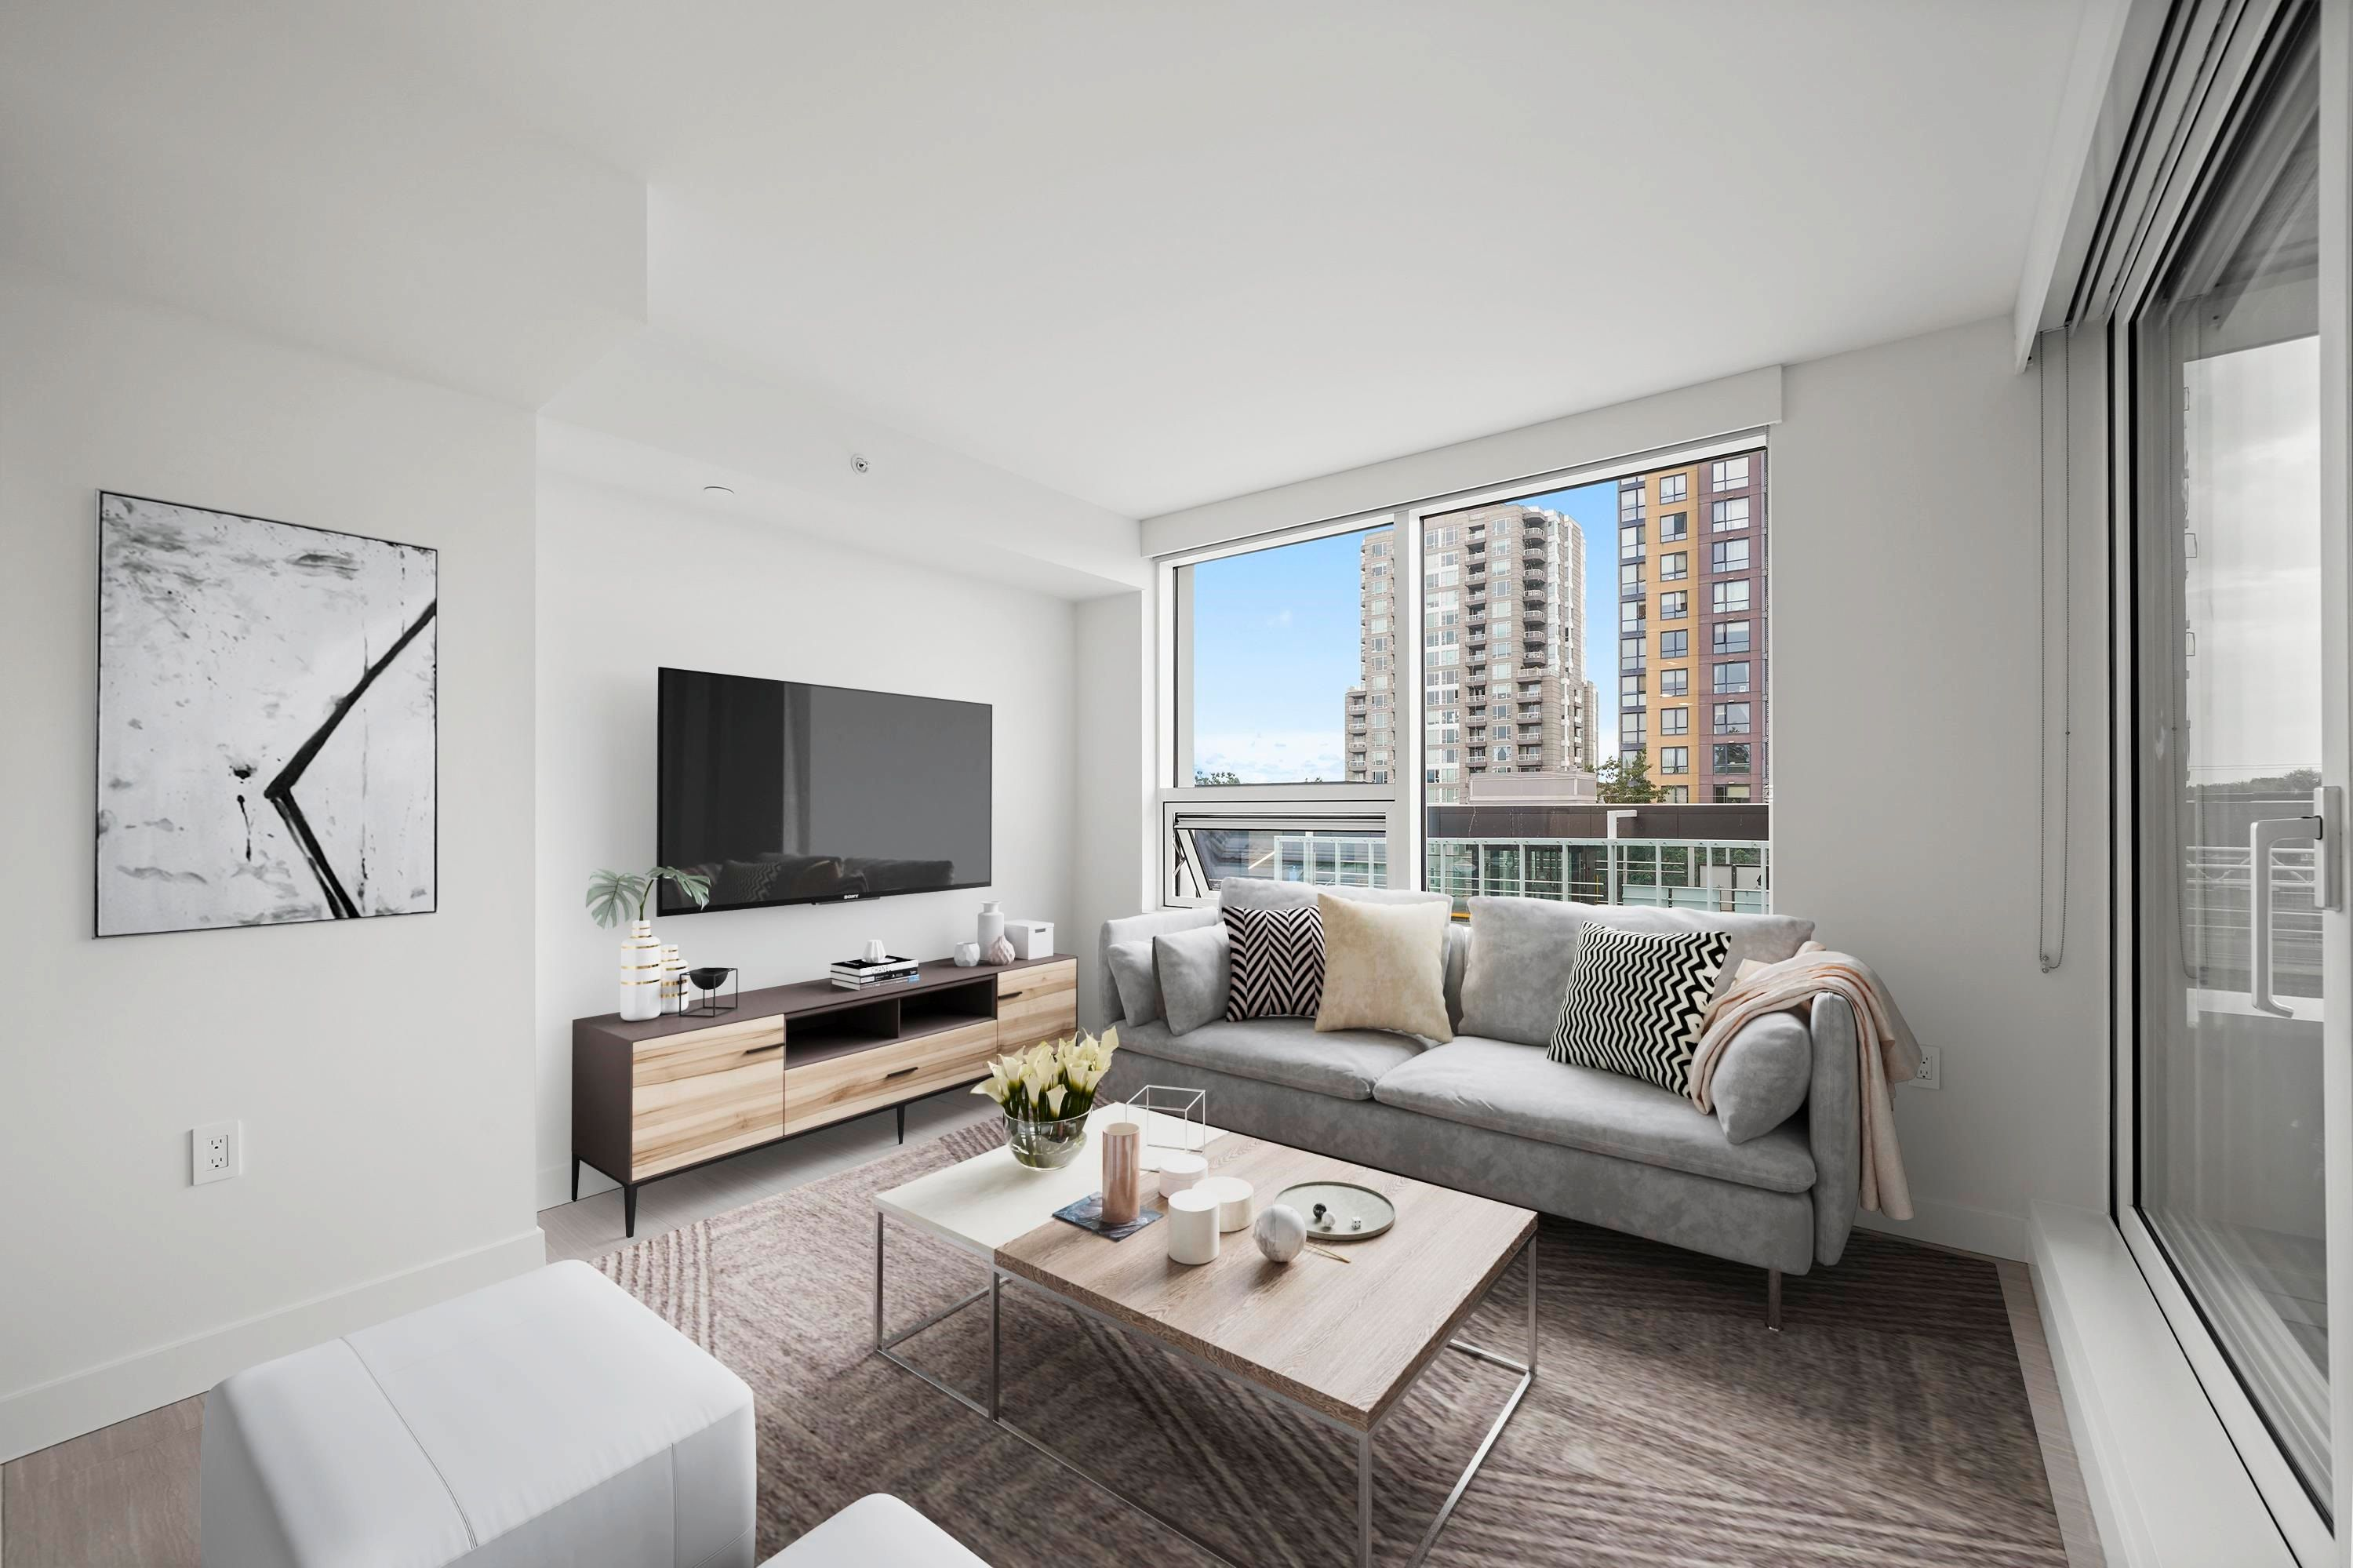 """Main Photo: 308 5058 JOYCE Street in Vancouver: Collingwood VE Condo for sale in """"JOYCE BY WESTBANK"""" (Vancouver East)  : MLS®# R2617794"""